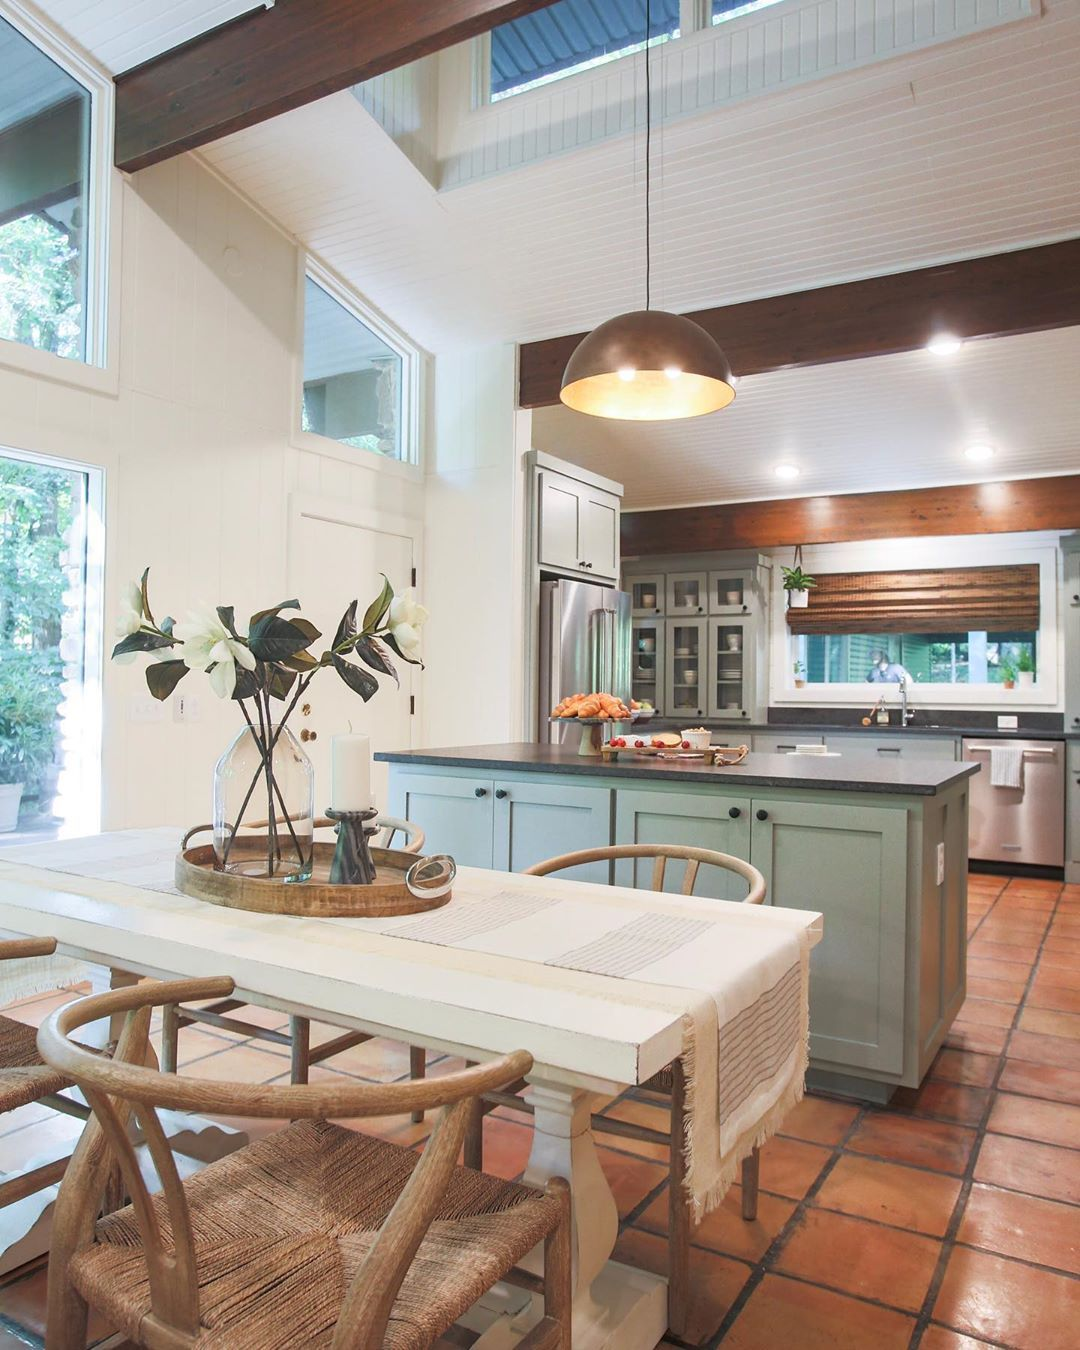 25 Windowless Kitchen Design Ideas: HGTV Fixer To Fabulous Kitchen And Dining Room For